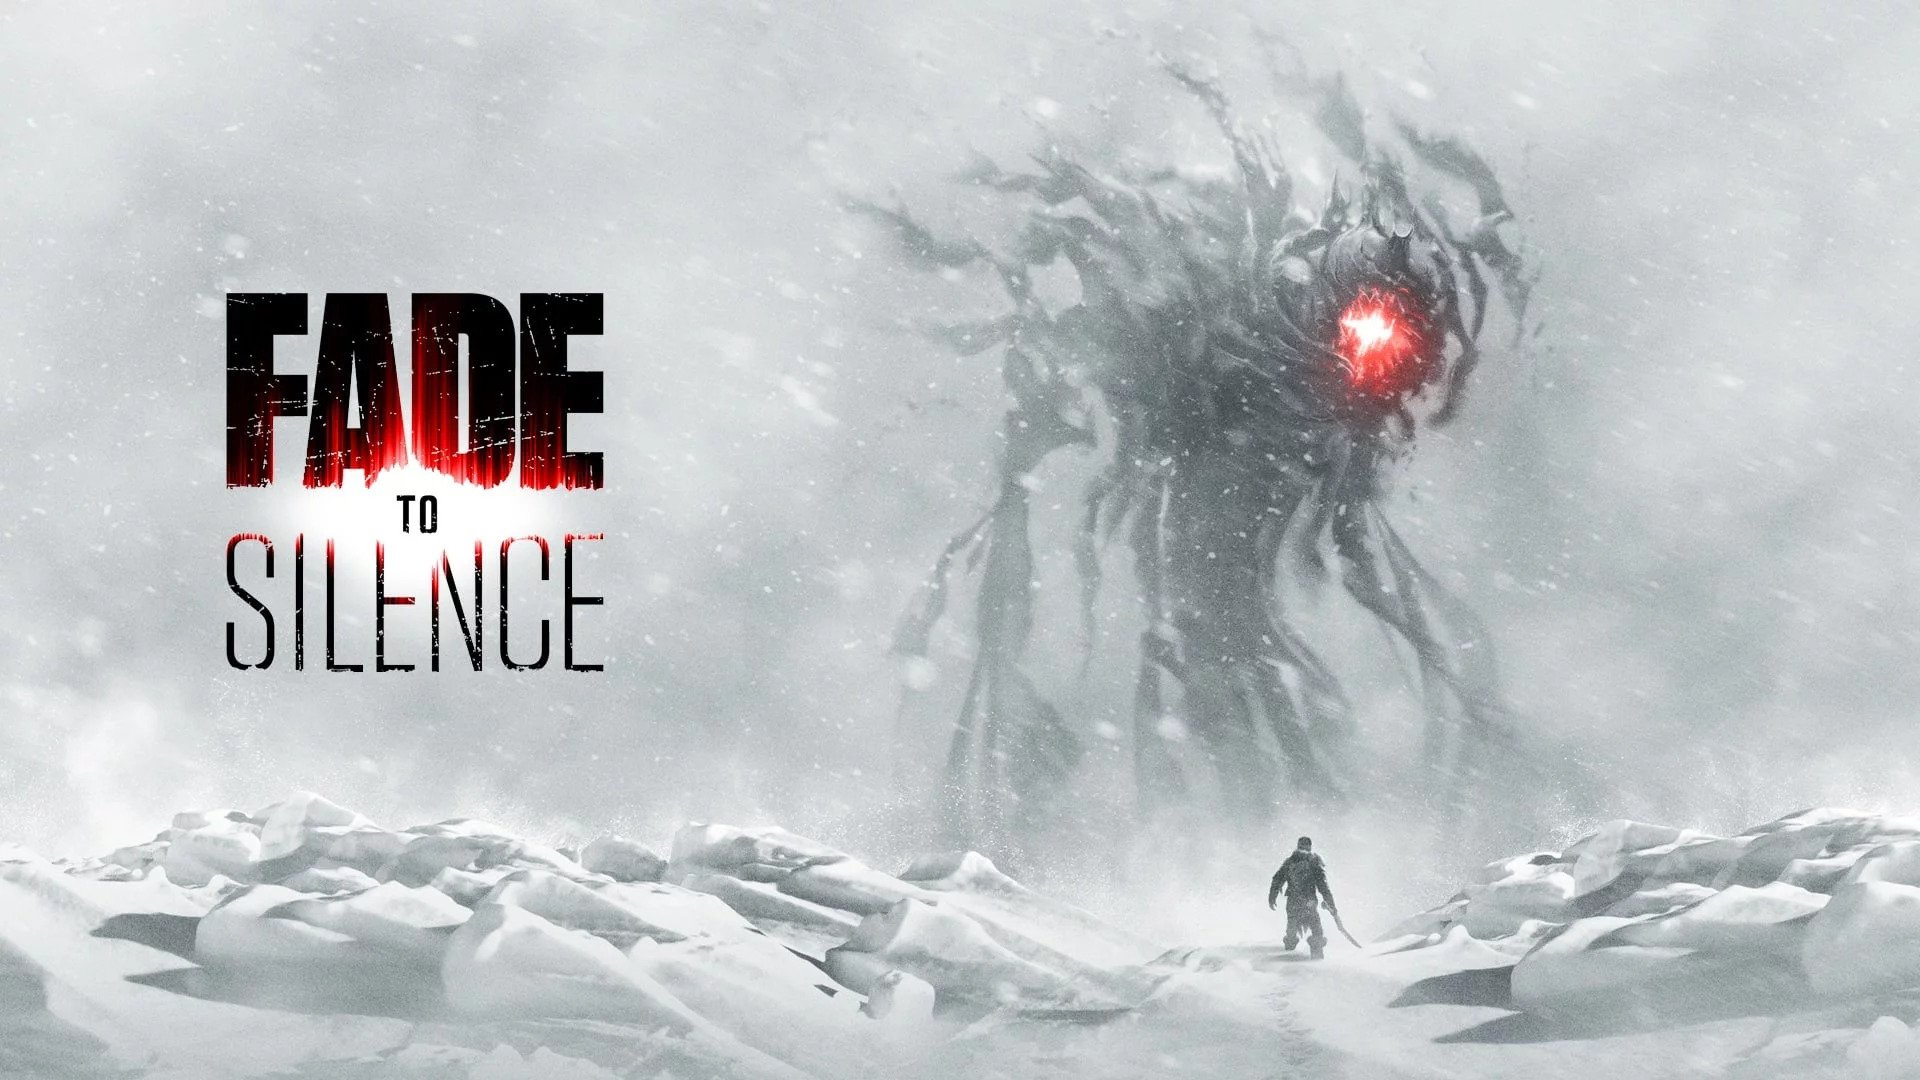 Fade To Silence review – winter is coming